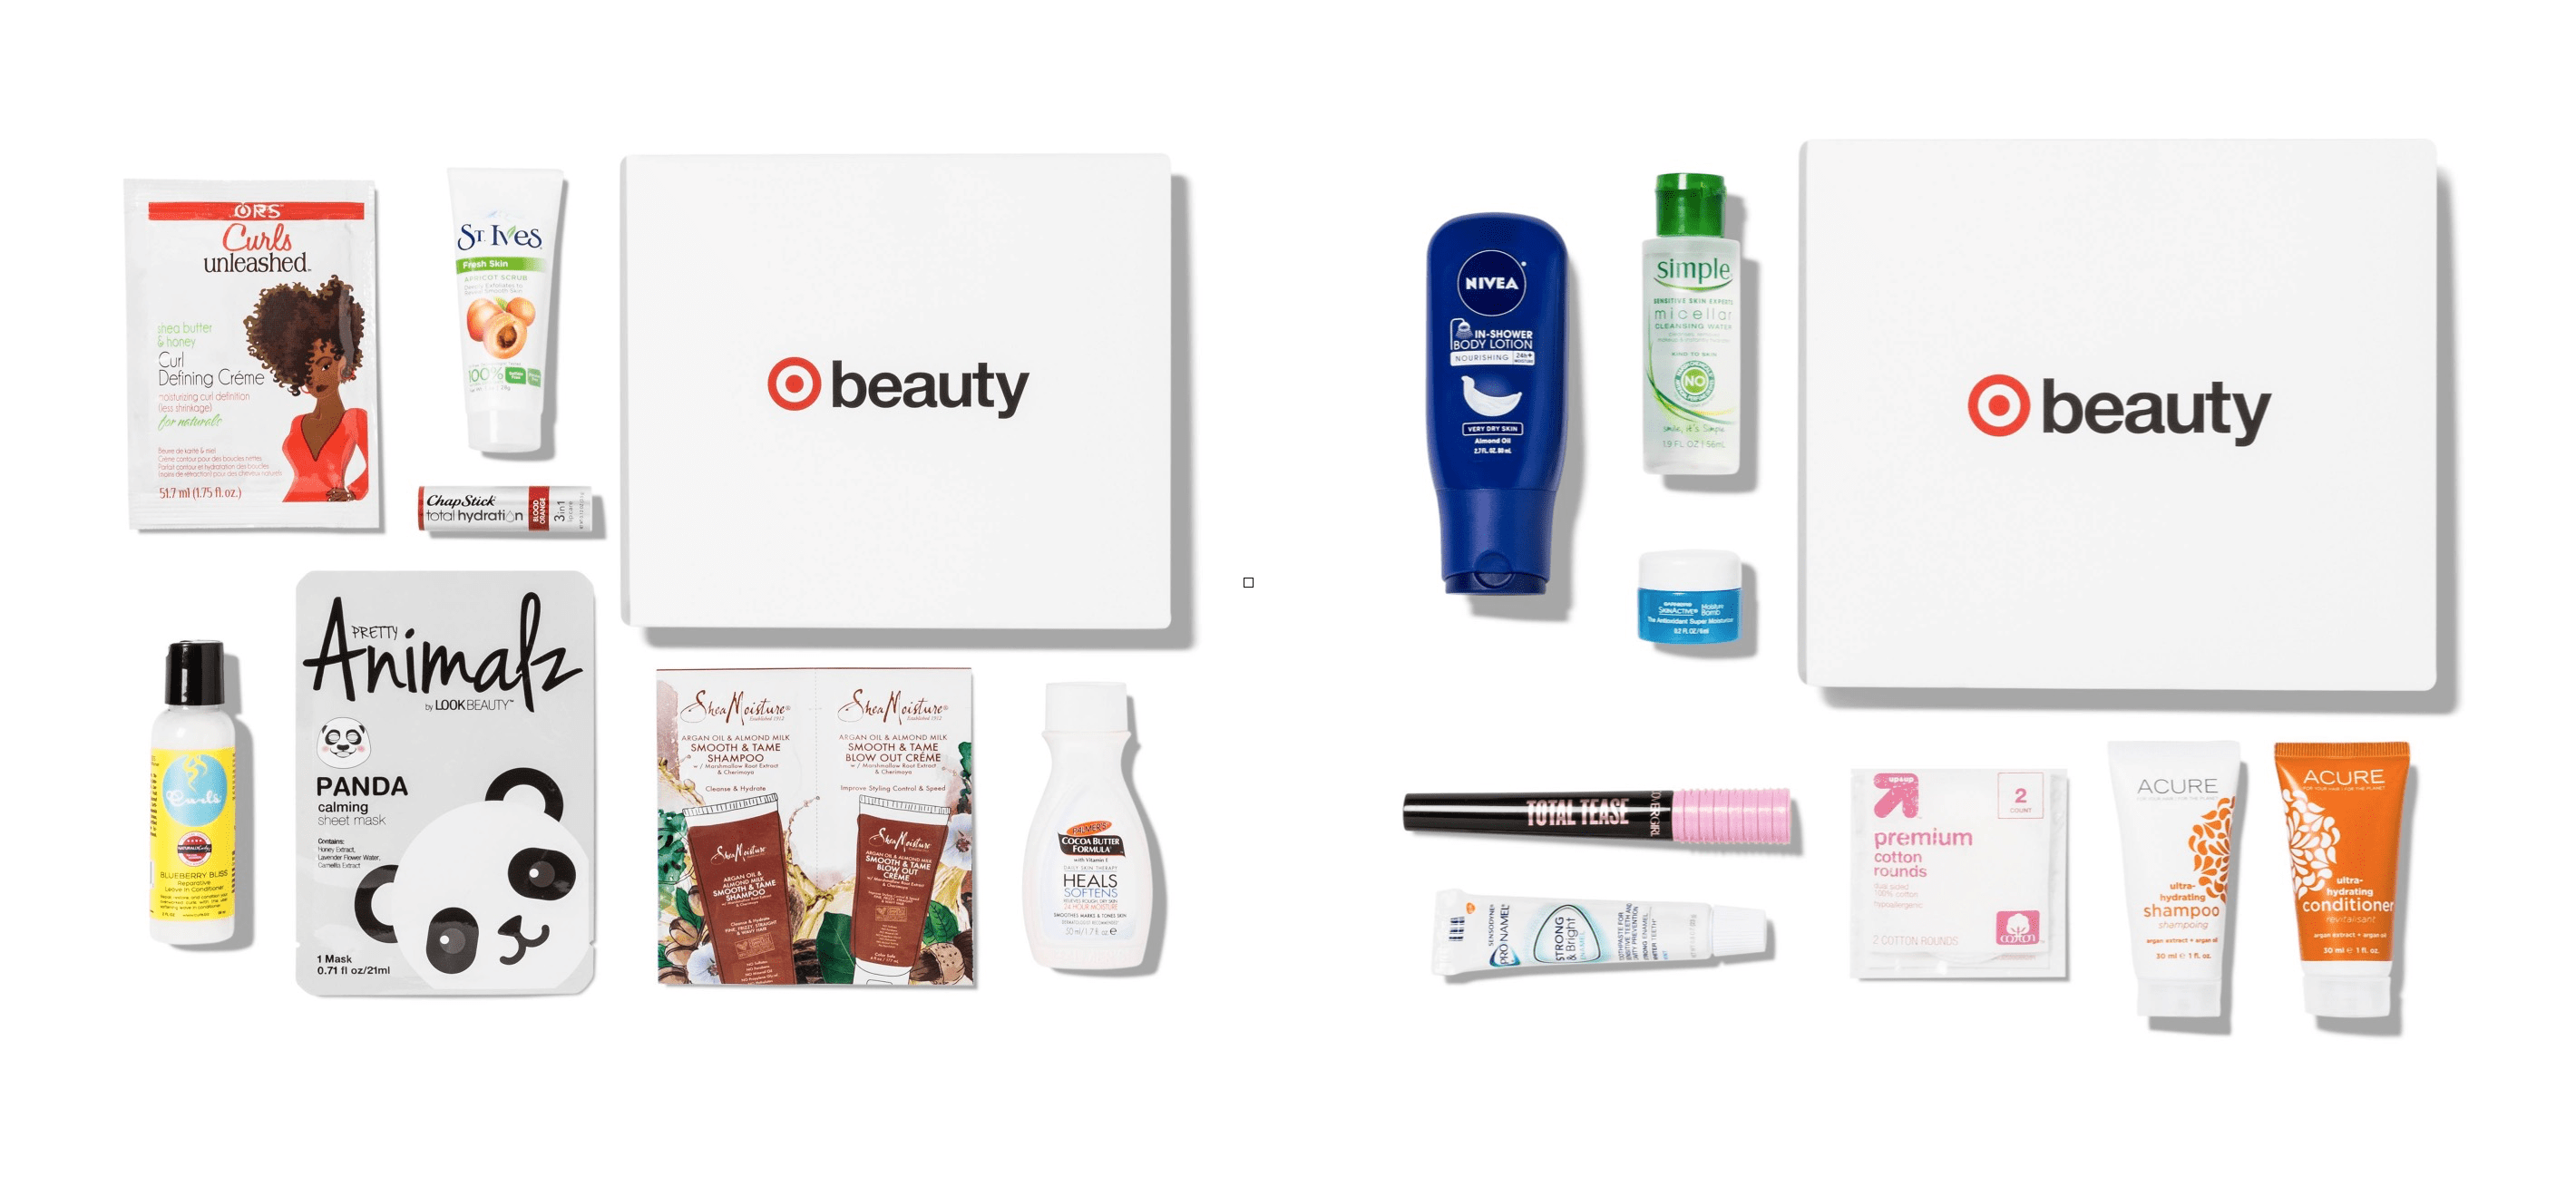 Target September 2017 Total Hydration Beauty Box Price Drop!